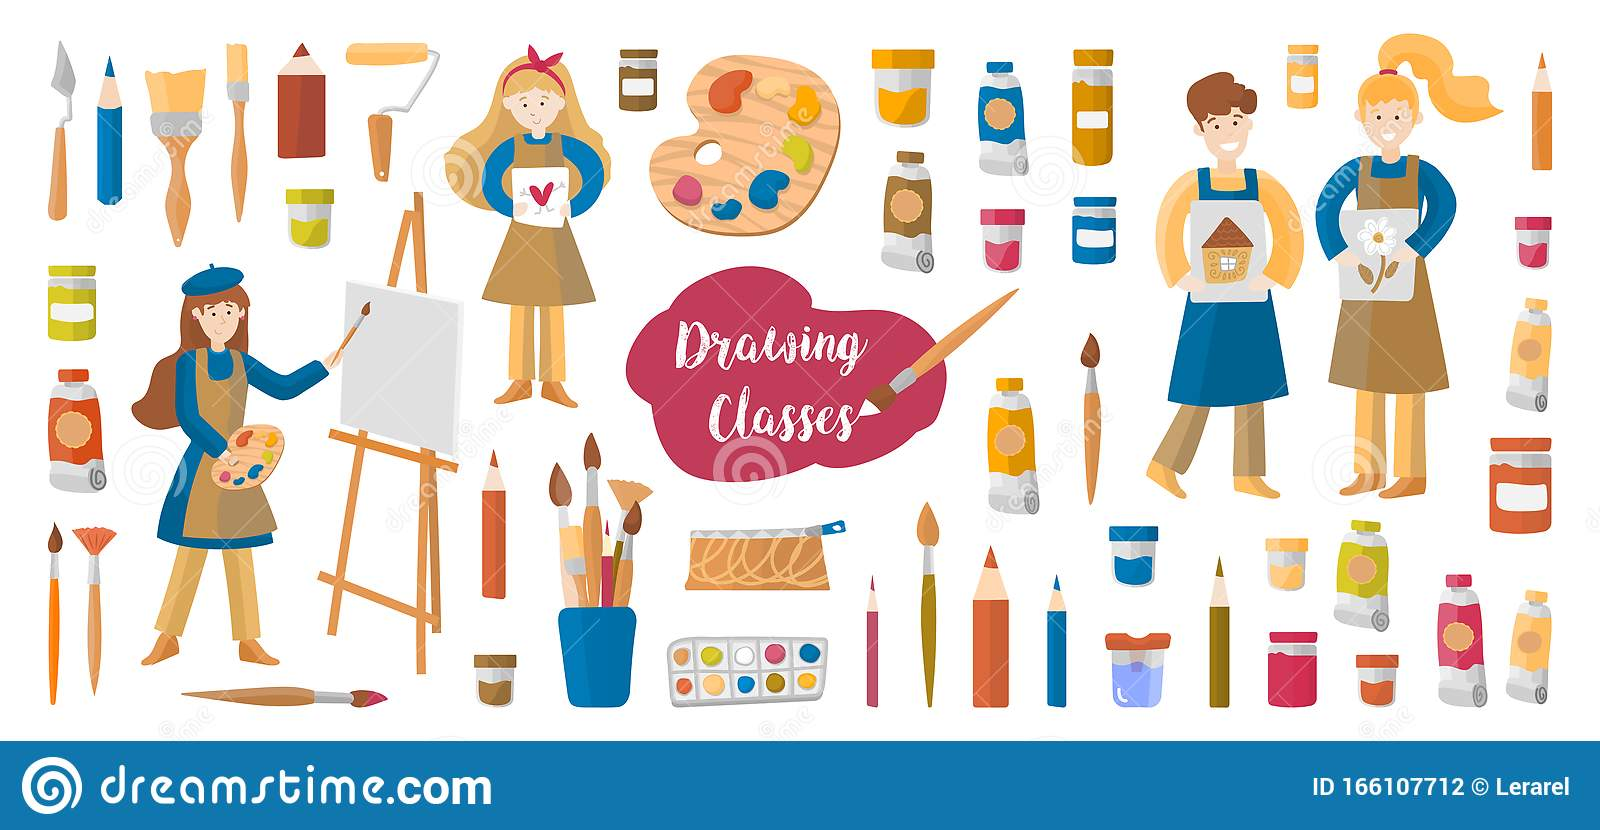 Drawing classes for adults